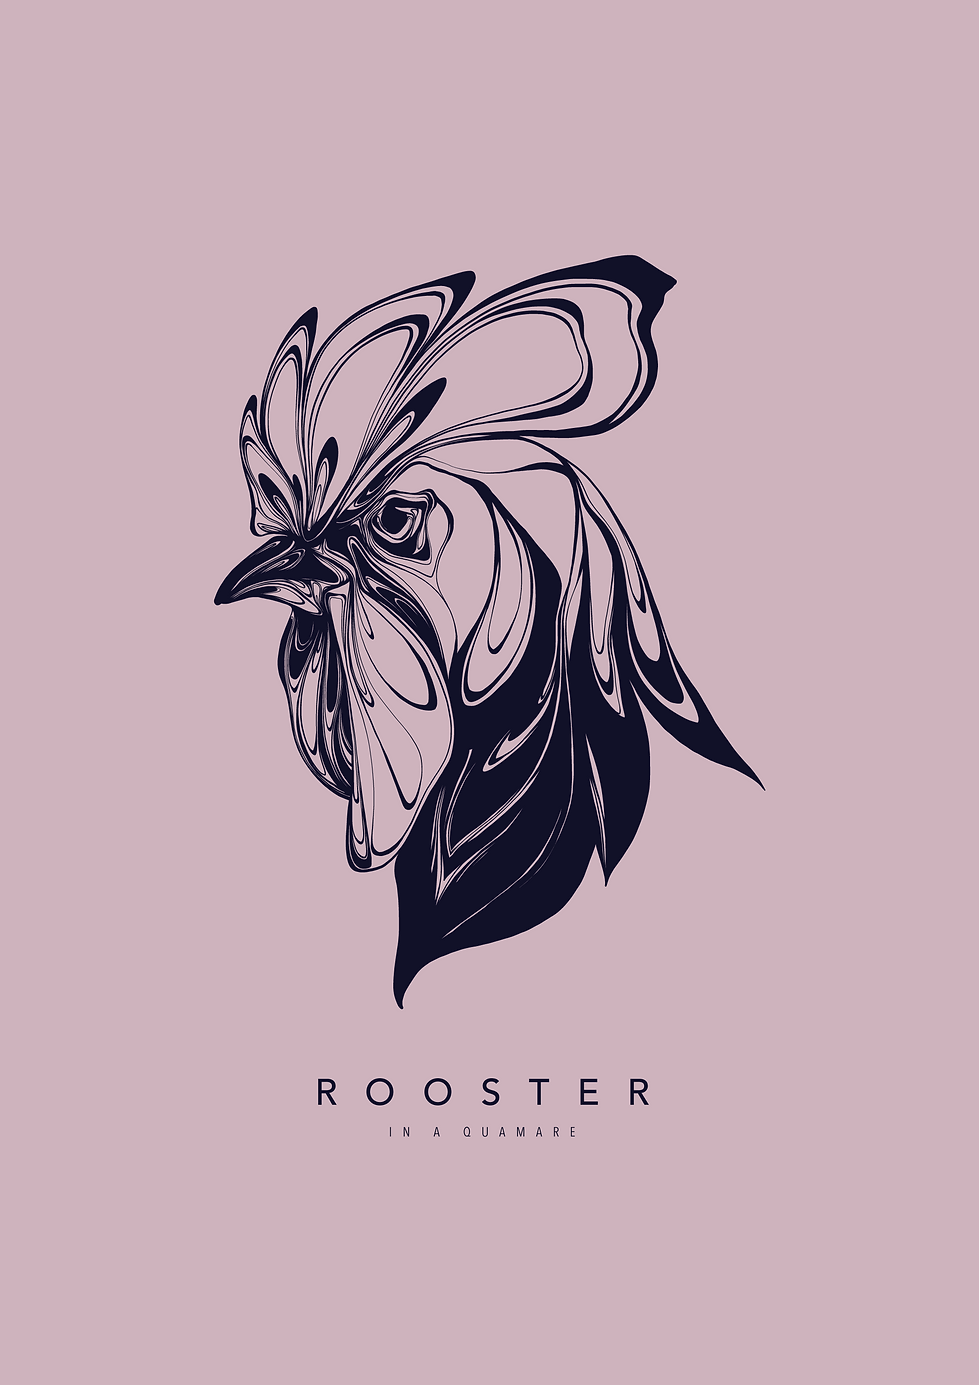 190311 Rooster 02_3.png